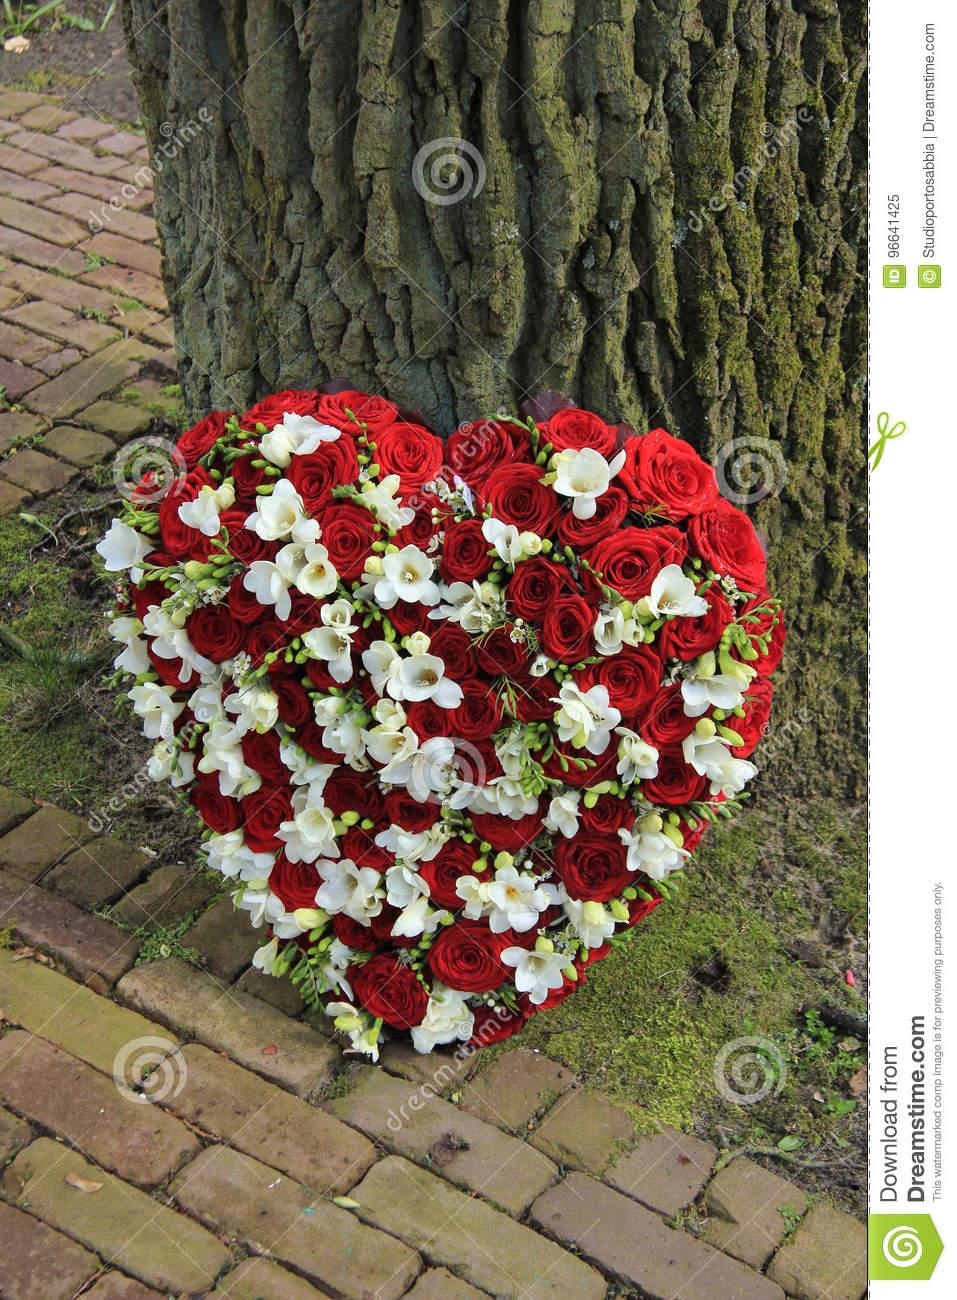 Red and white sympathy flowers near a tree stock image image of red and white sympathy flowers near a tree izmirmasajfo Image collections